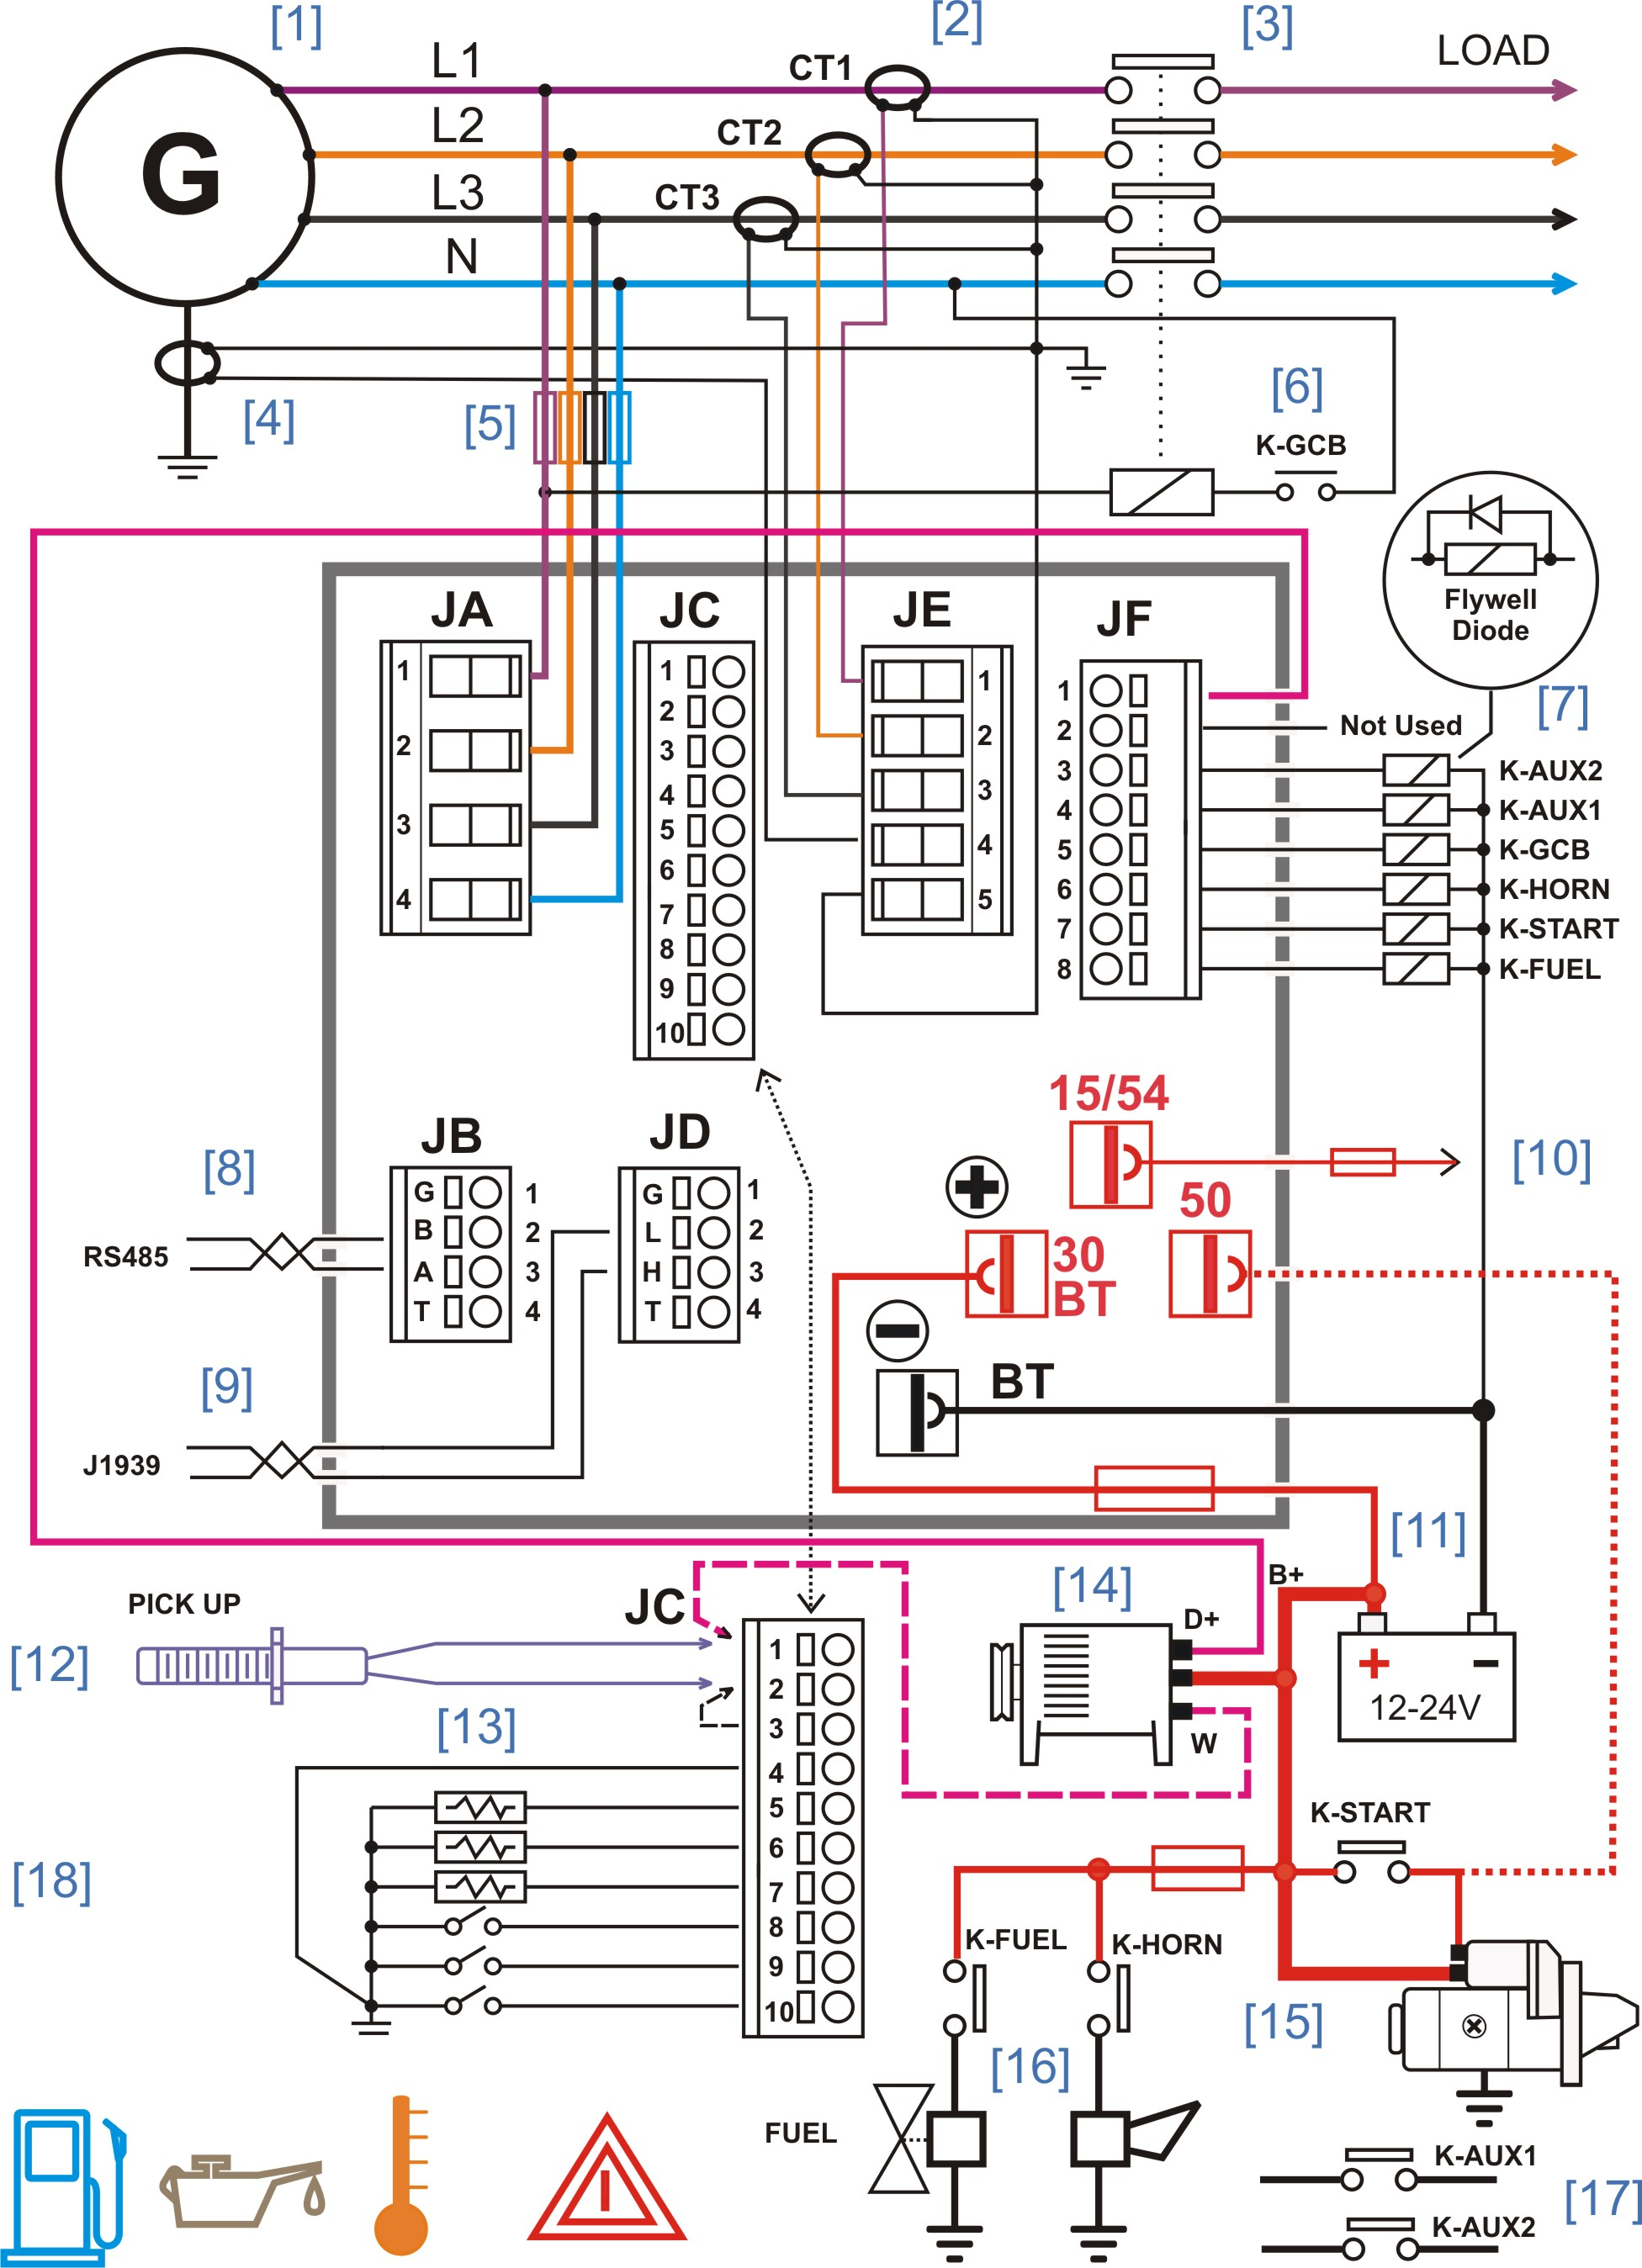 Industrial Control Wiring Diagrams - Data Wiring Diagram on industrial motor control, industrial electrical wiring diagrams, industrial electrical panel wiring,